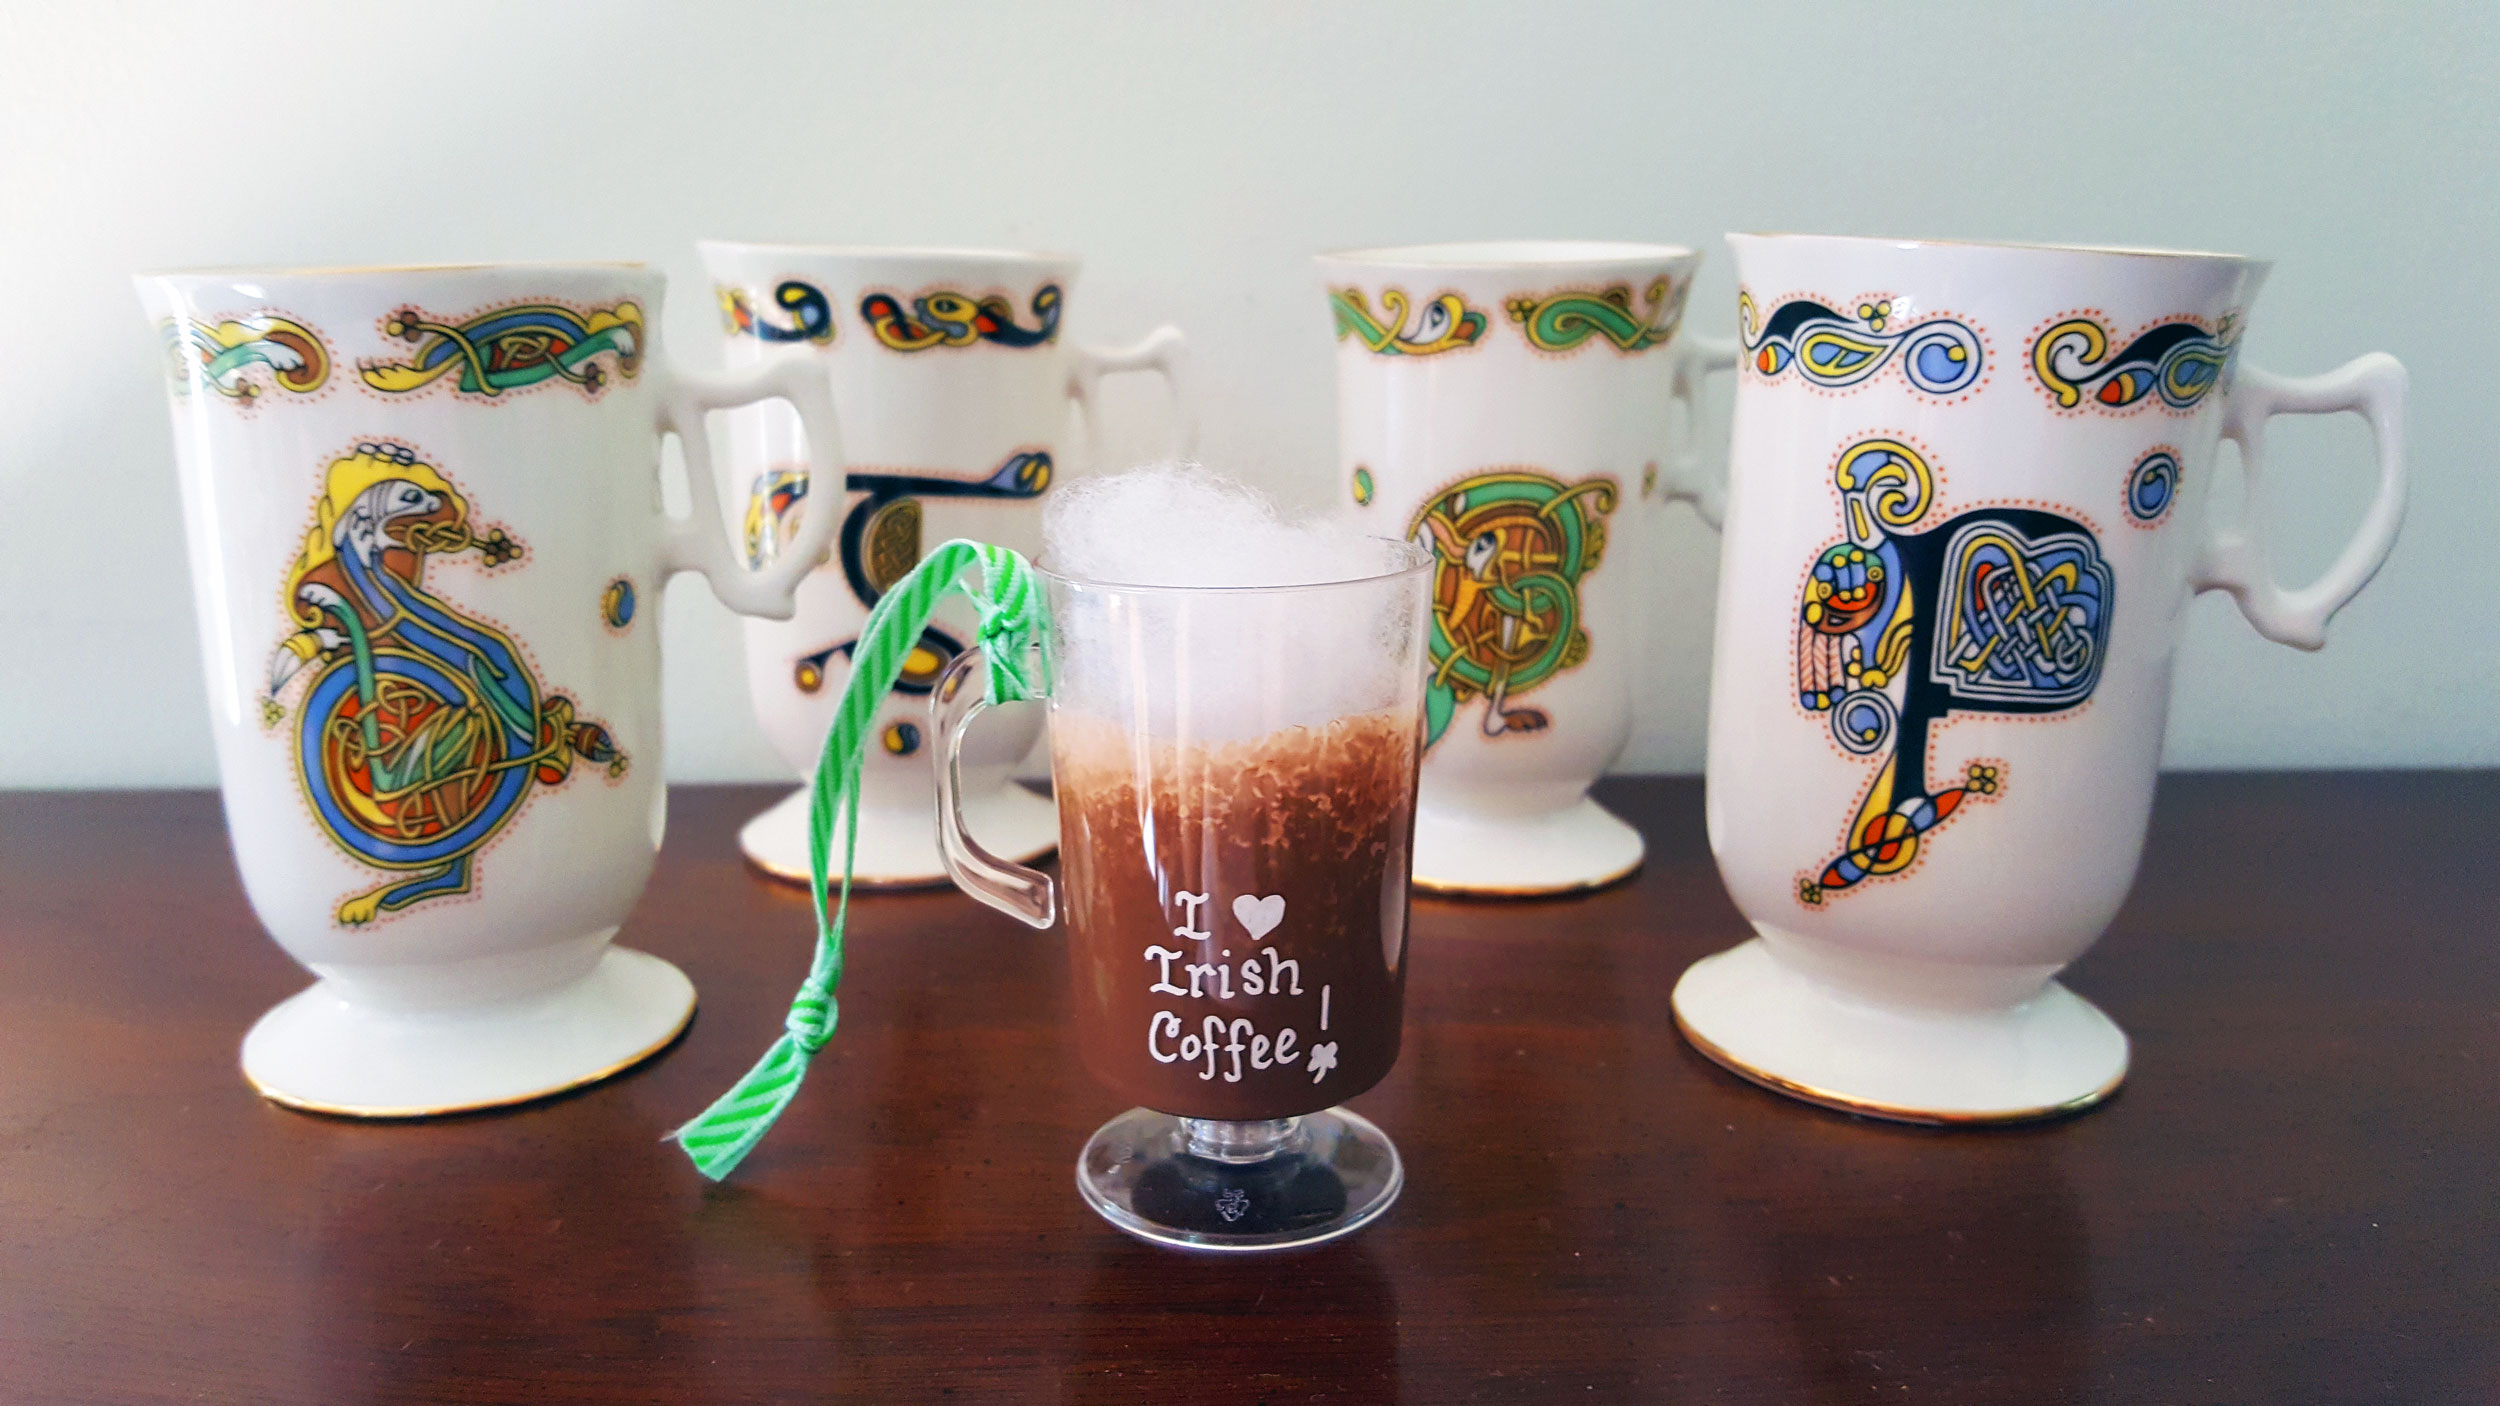 Completed Irish Coffee Ornament | OrnamentShop.com